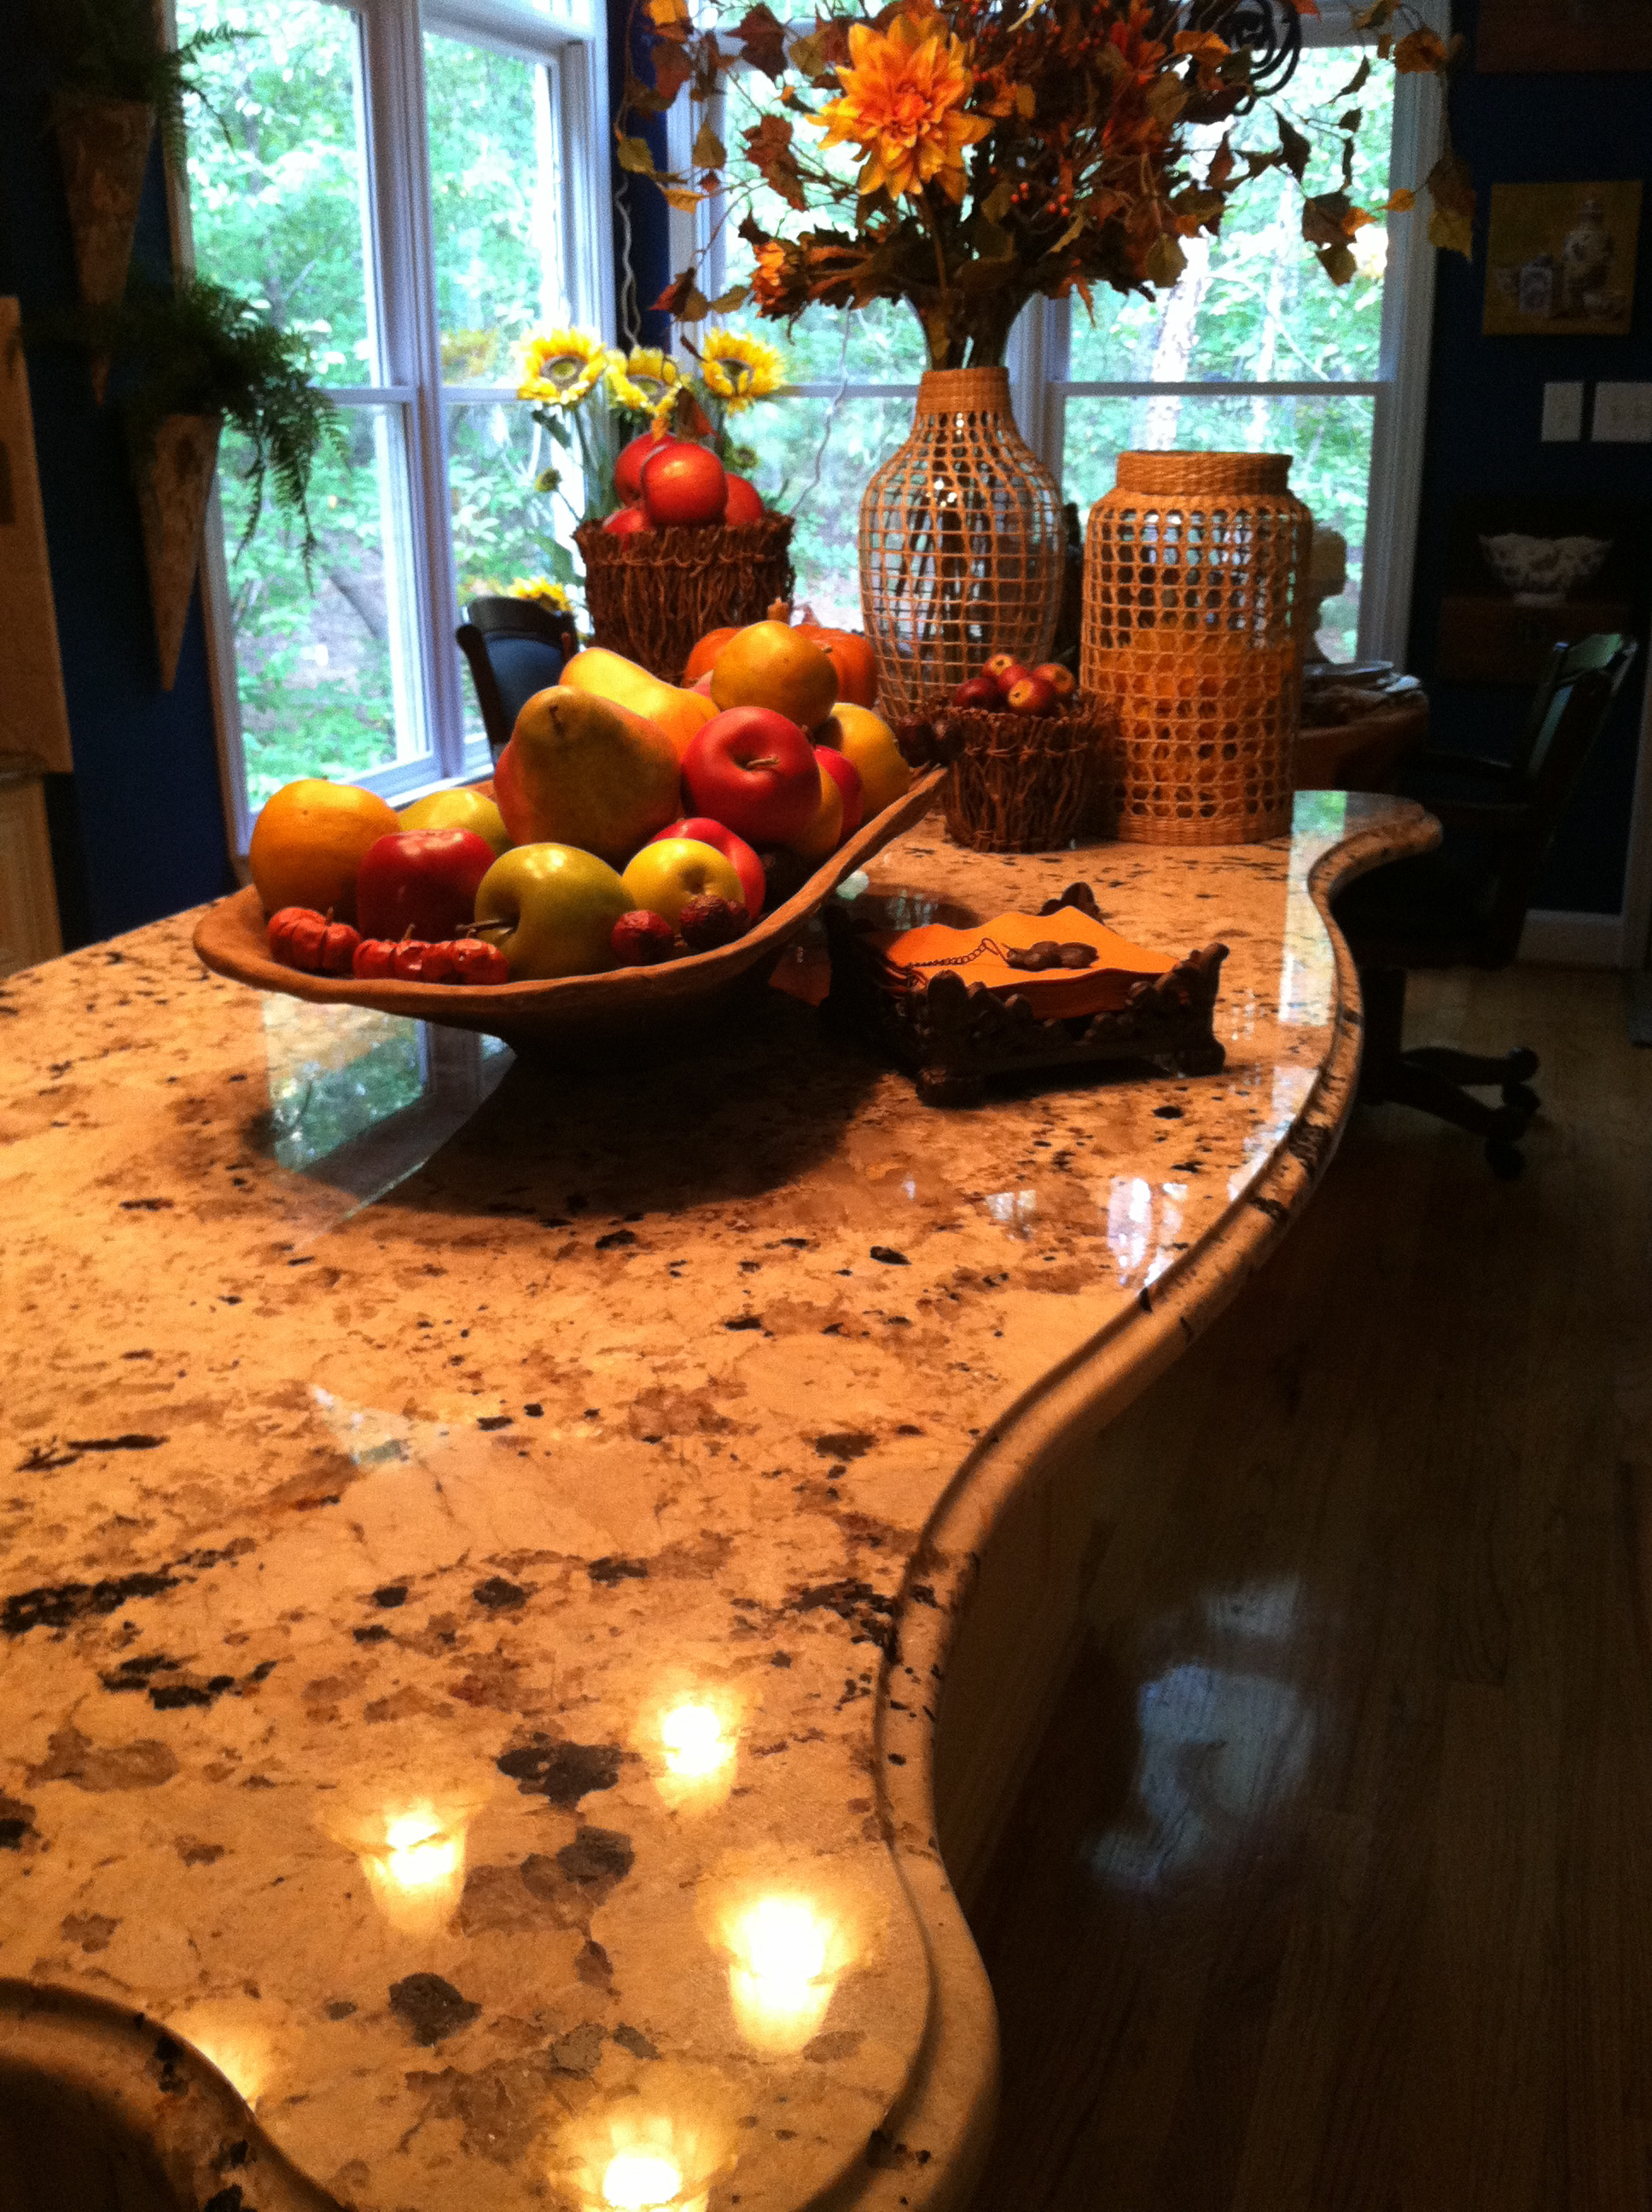 Fill a wooden bowl with real apples and display on your kitchen island.